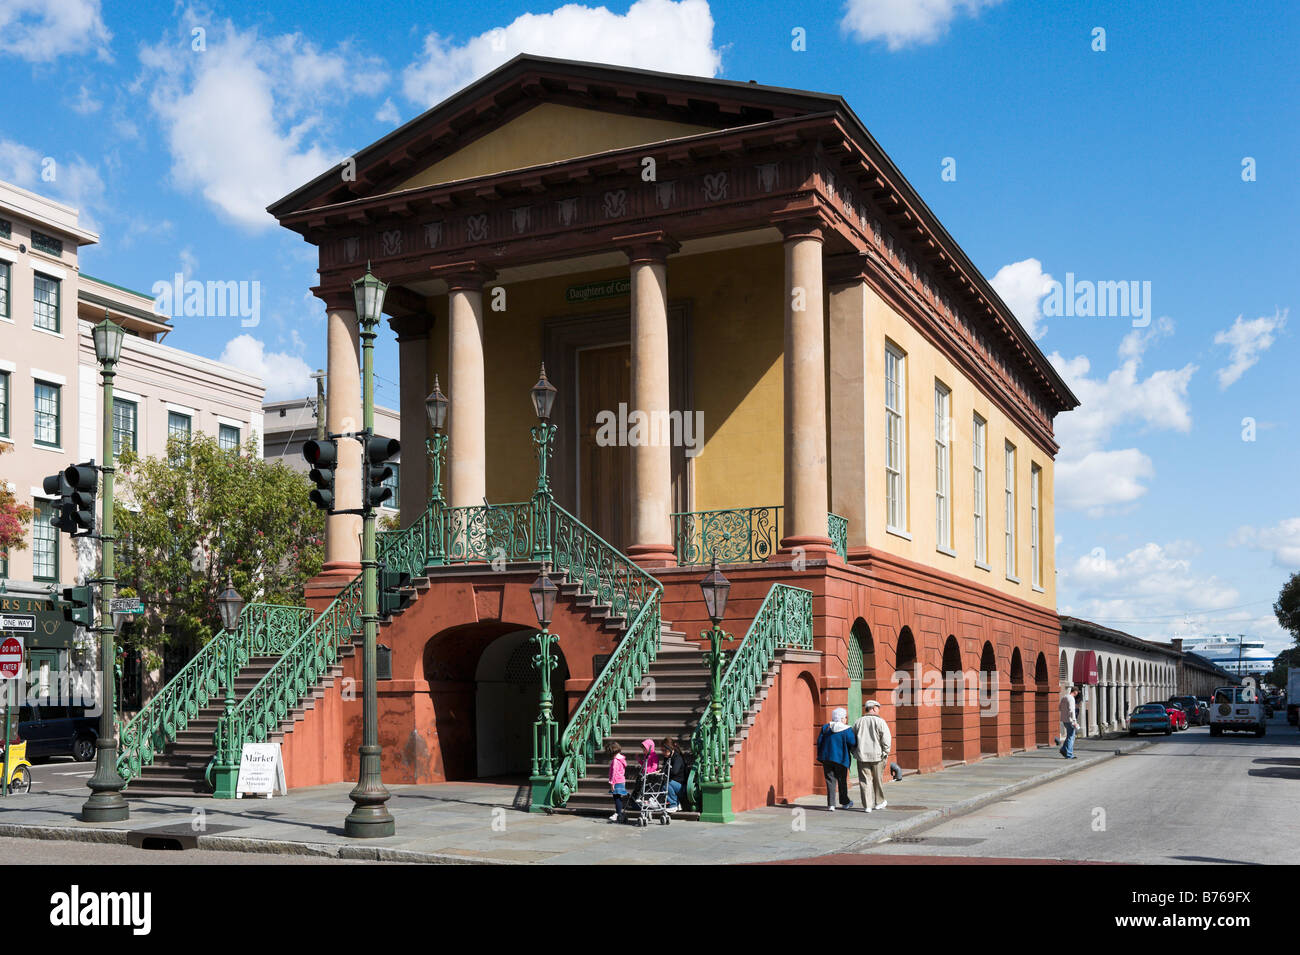 The Market Hall and Confederate Museum at Charleston City Market in the historic district, Charleston, South Carolina - Stock Image